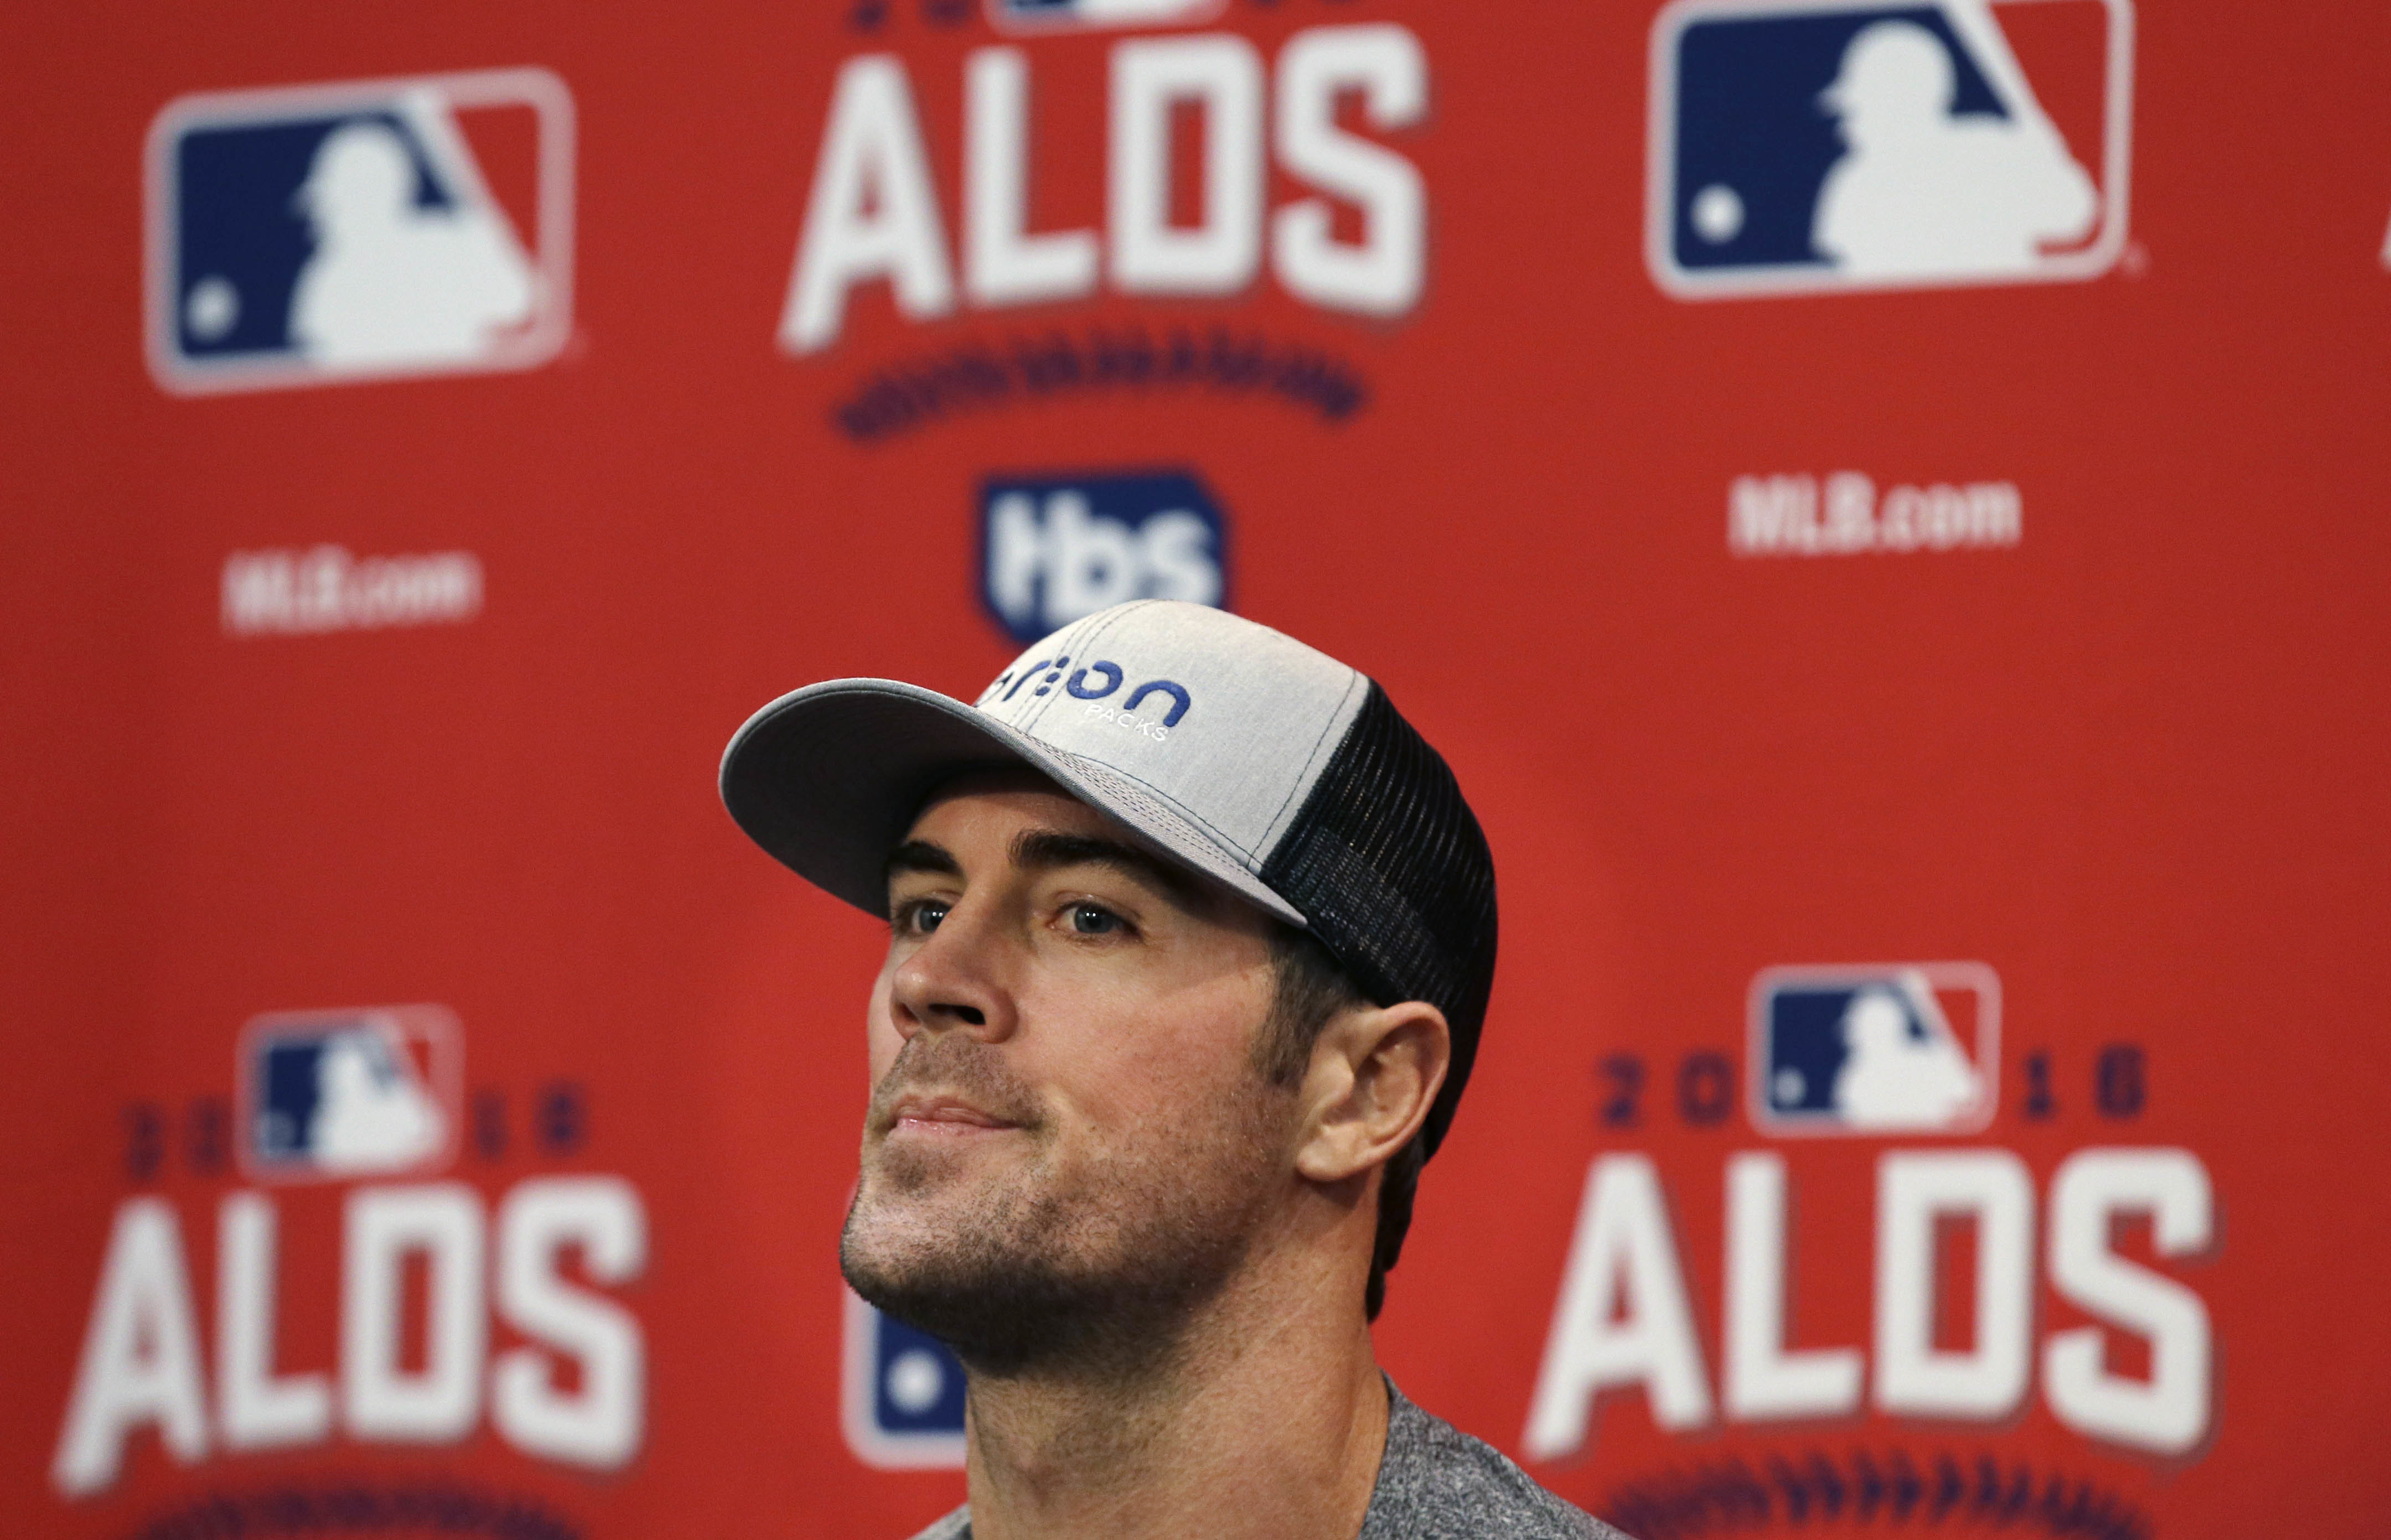 Texas Rangers starting pitcher Cole Hamels listens to a question during a news conference before Game 1 of the American League Division Series of baseball in Arlington, Texas, Wednesday, Oct. 5, 2016. Hamels will start against the Blue Jays. (AP Photo/LM